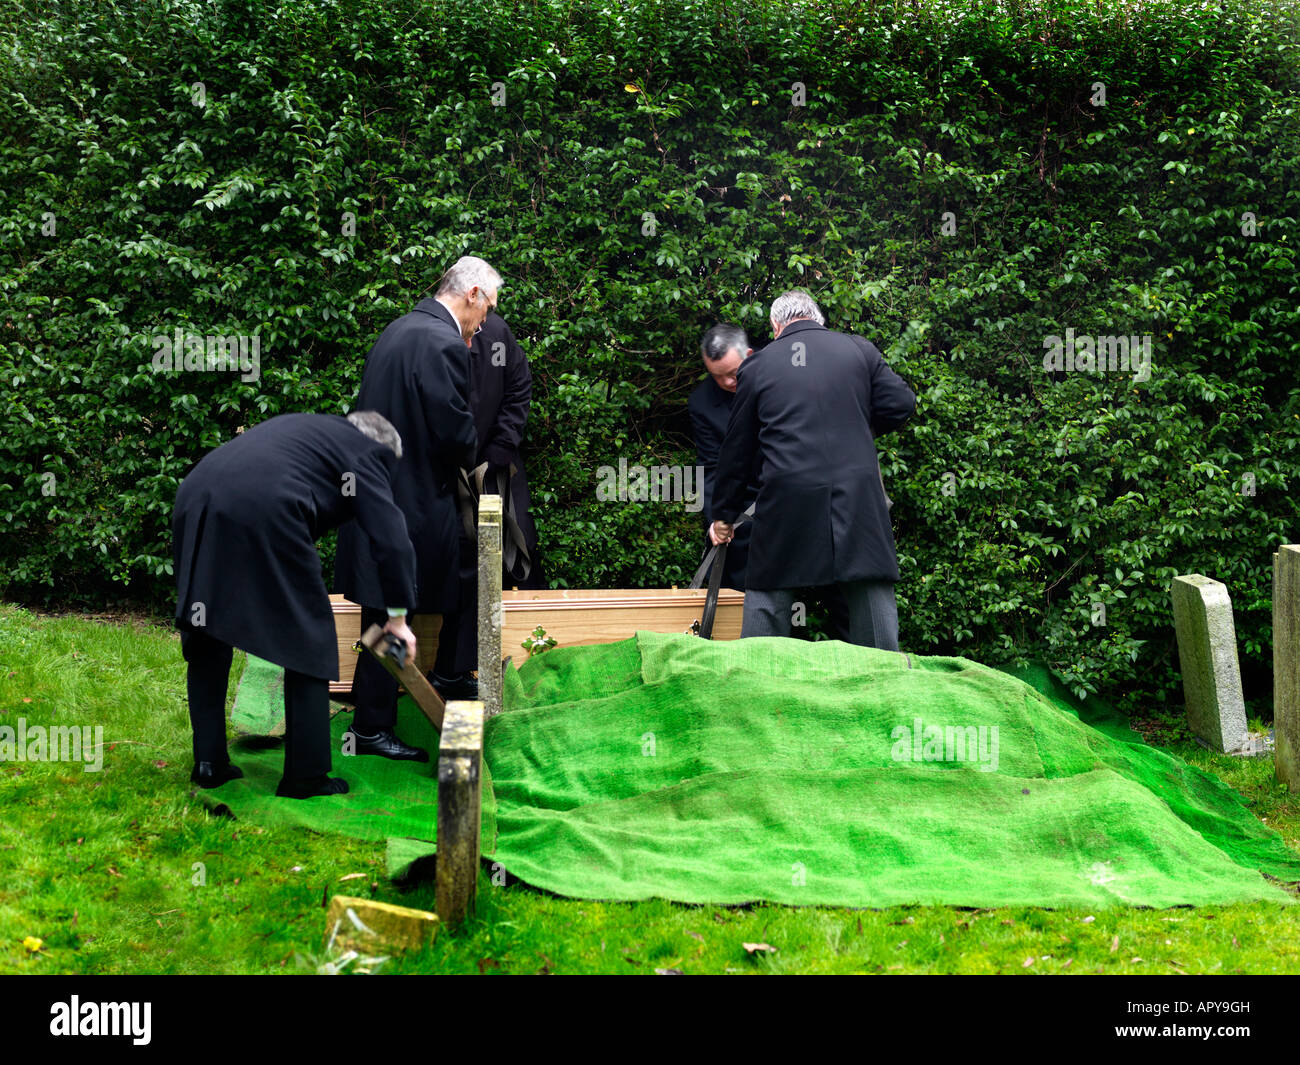 Funeral Saint Martins Church East Horsley Surrey England Lowering Coffin into Grave - Stock Image